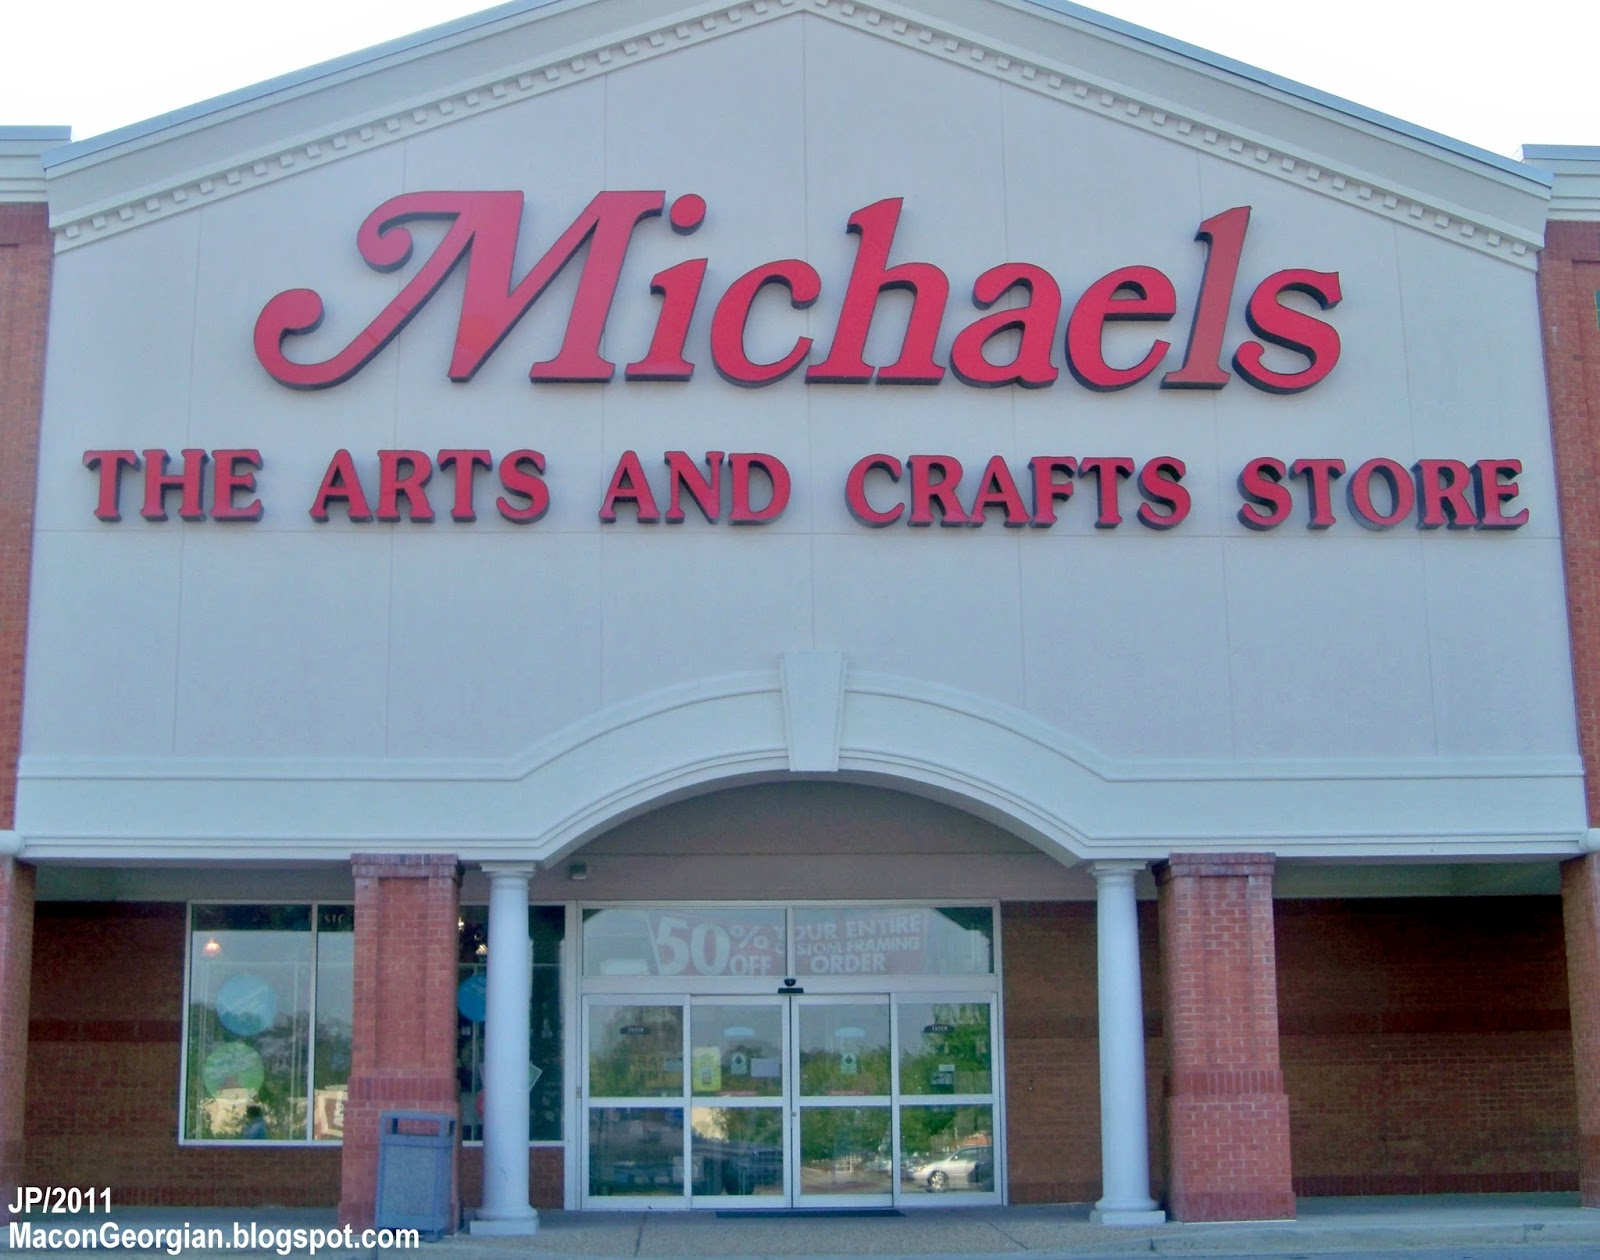 Michaels is a crafts and arts retail outlet and has been established in by Michael J. Dupey (Dallas based businessperson). It is one of the biggest retail sectors that has its corporate headquarter in Irving, Texas. Presently it operates over Michaels Arts and Crafts Stores and has been located in 49 states in Canada and U.S.